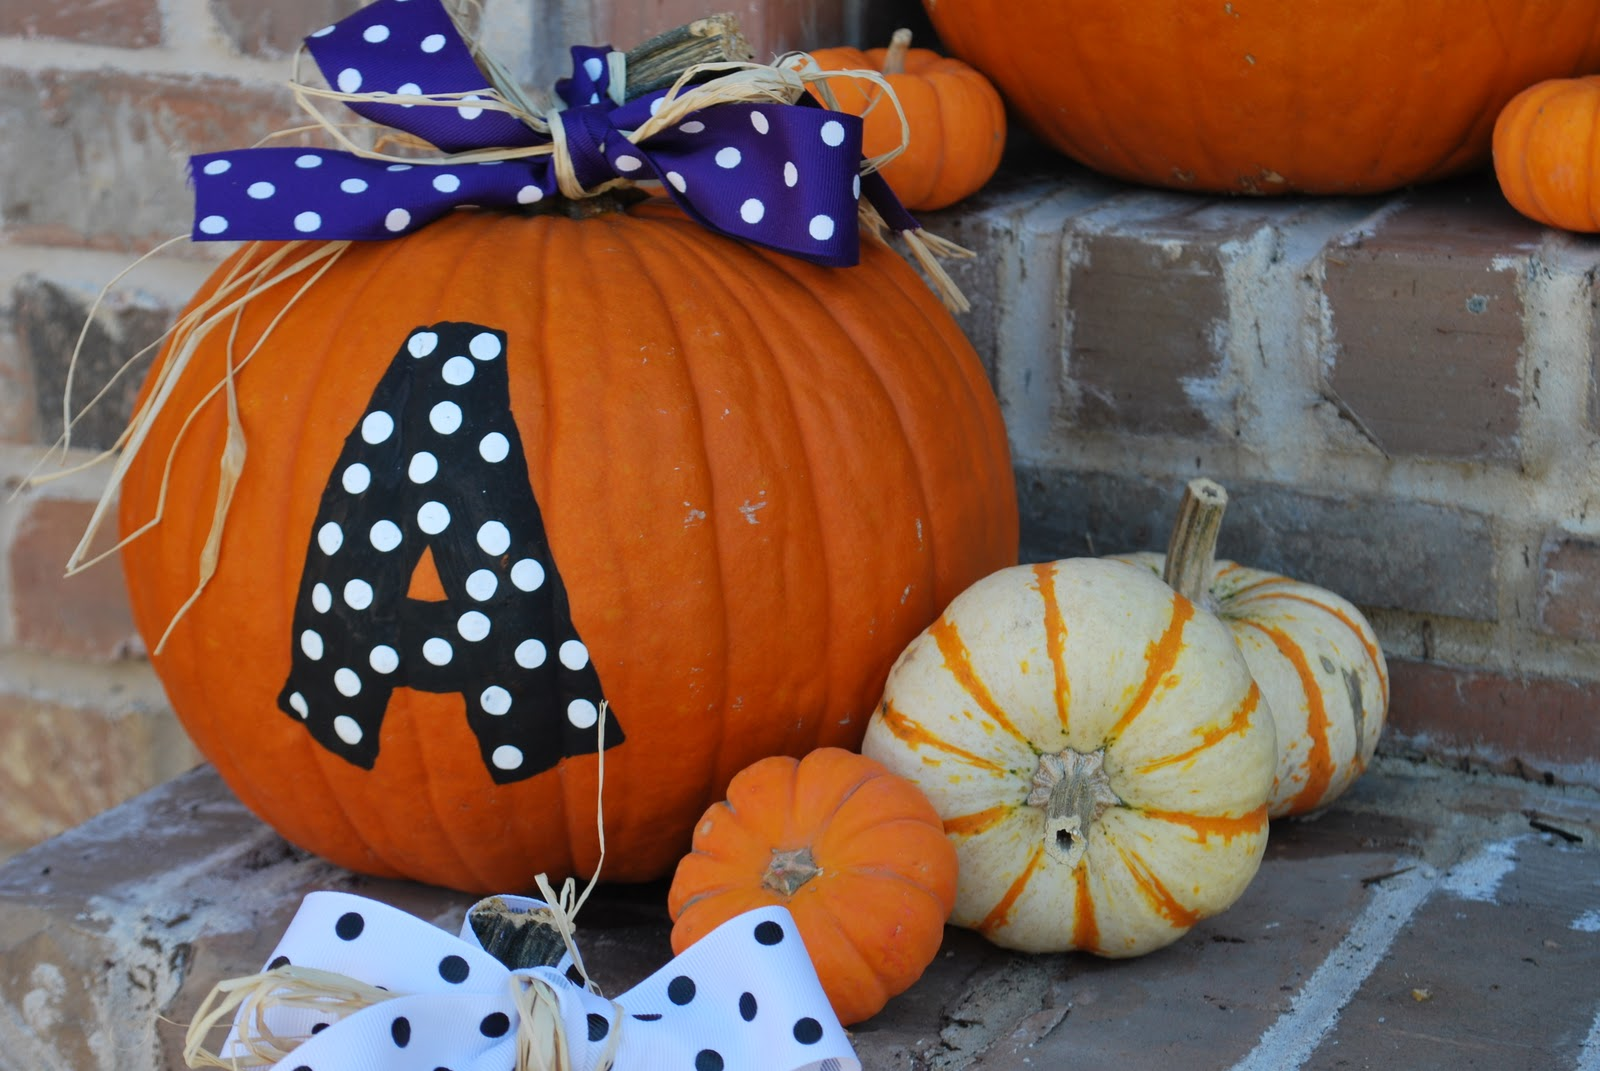 Cute pumpkin painting ideas viewing gallery - Cute pumpkin painting ideas ...